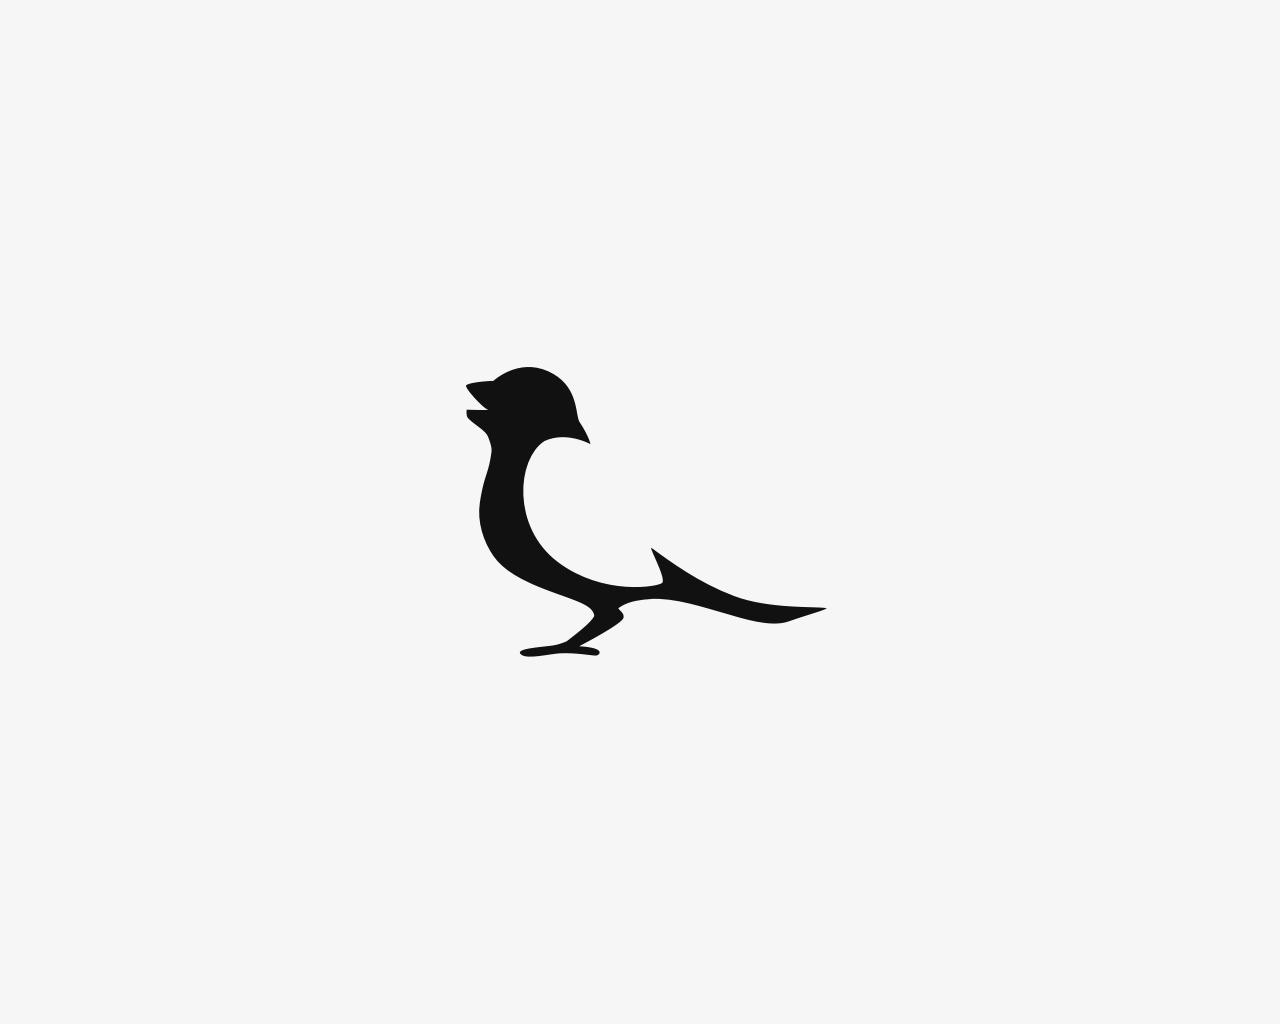 Animal Logos & Brand Identities by hirsch_wolf - 97731